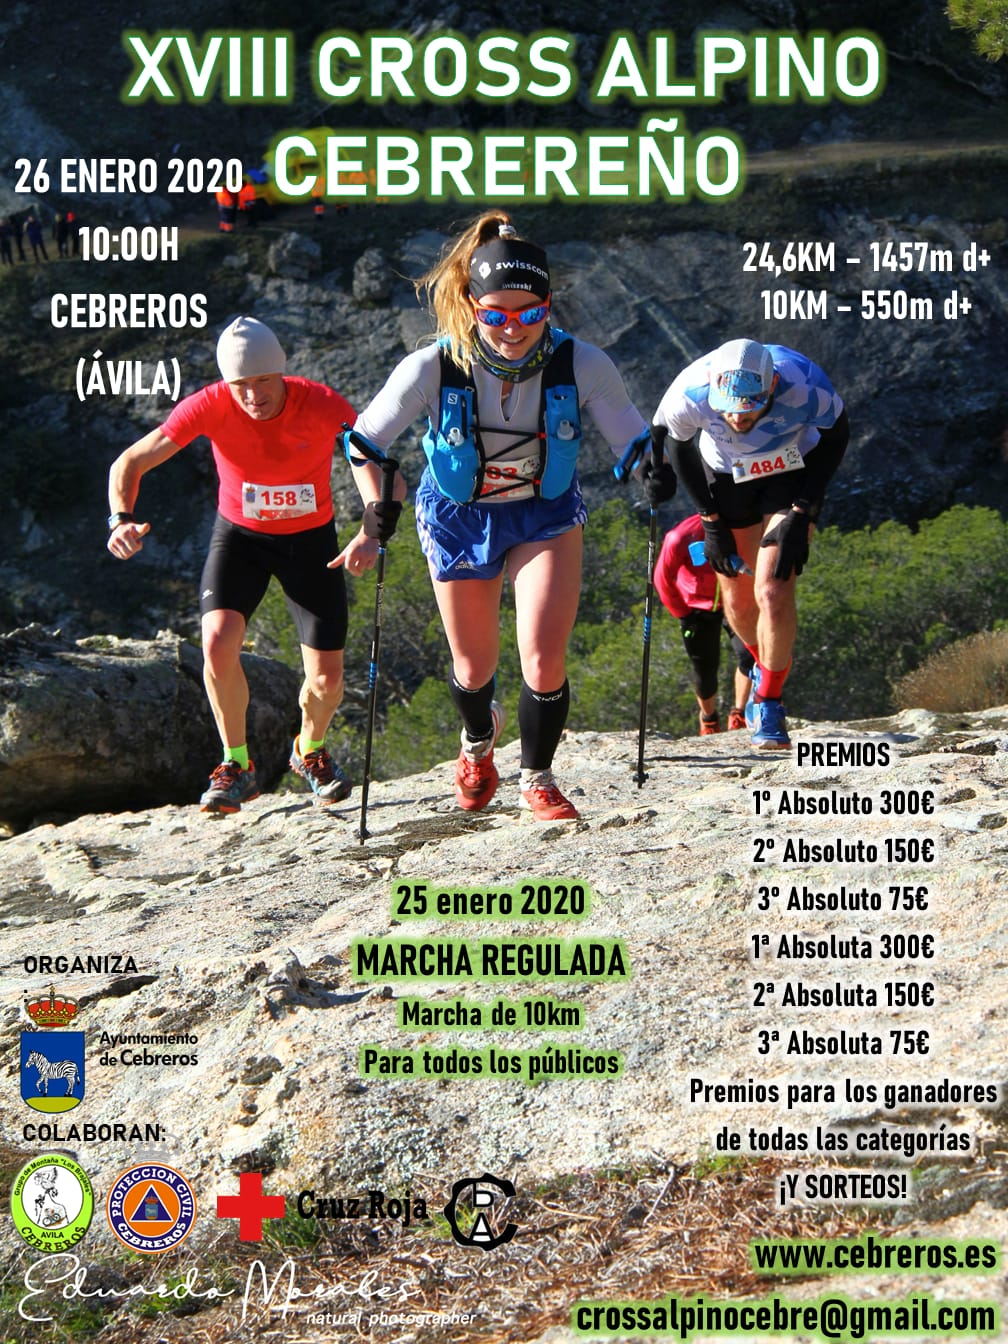 XVIII Cross Alpino Cebrereño